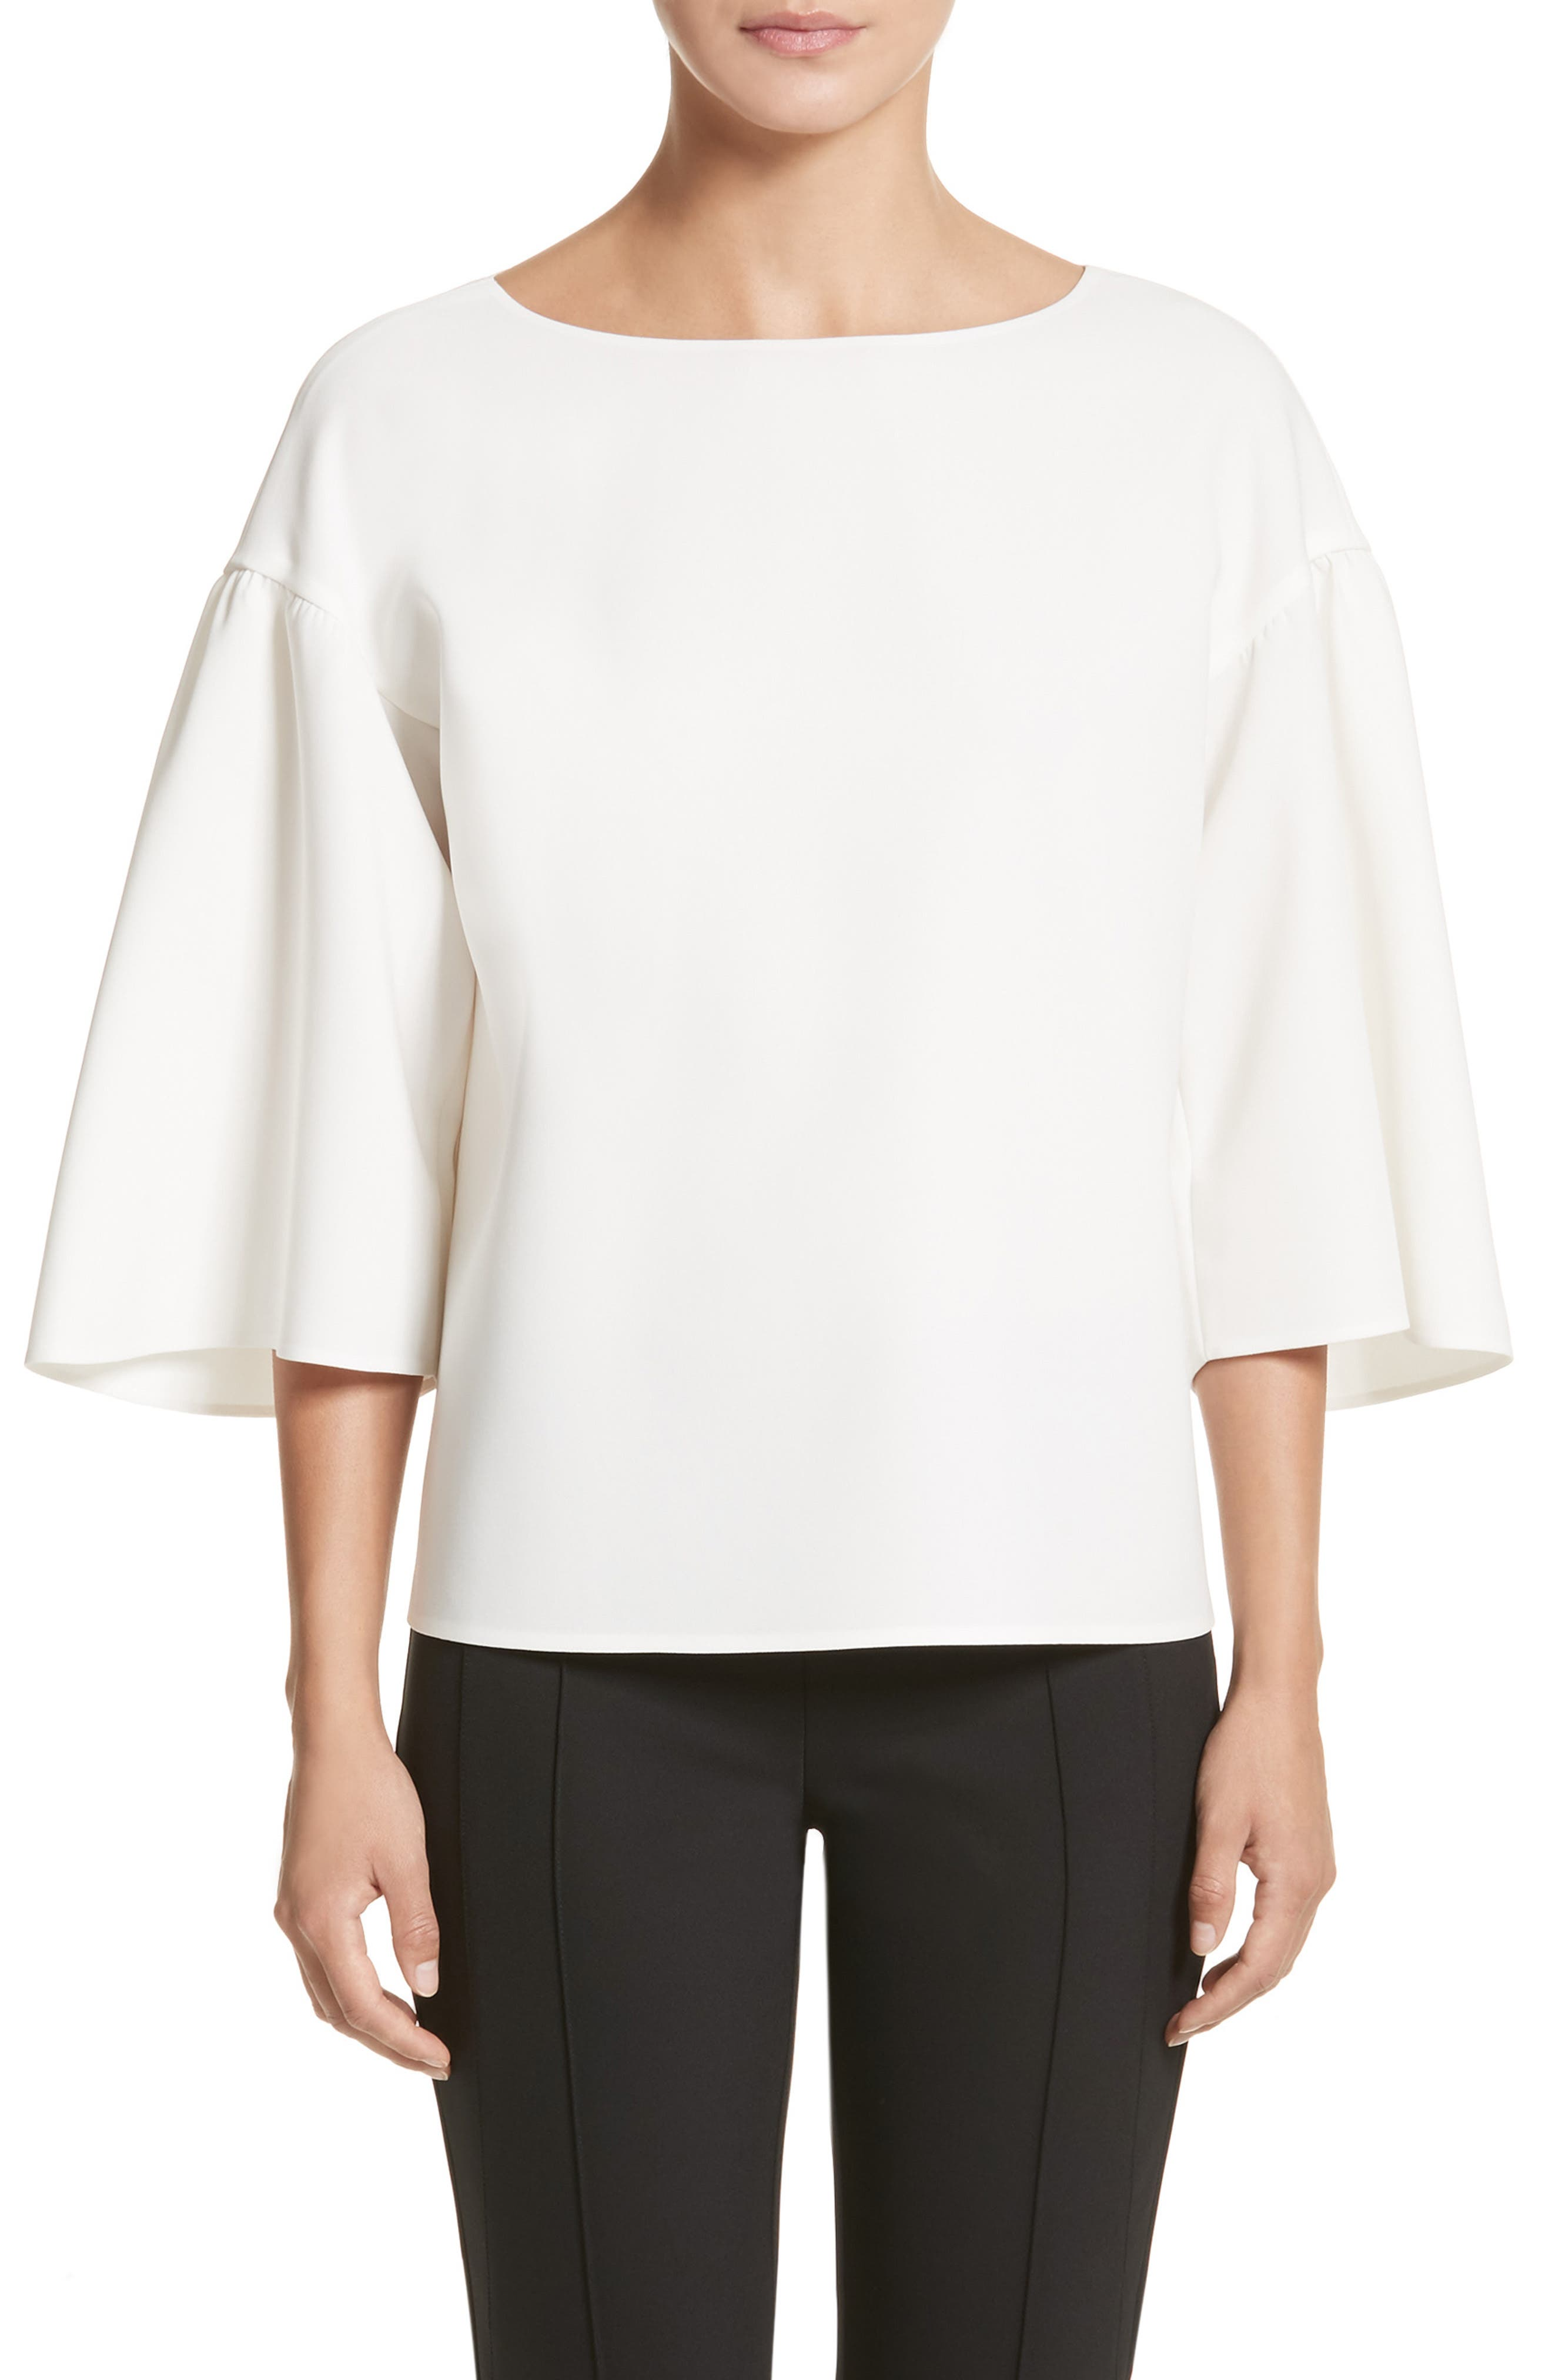 Gwendolyn Blouse,                         Main,                         color,